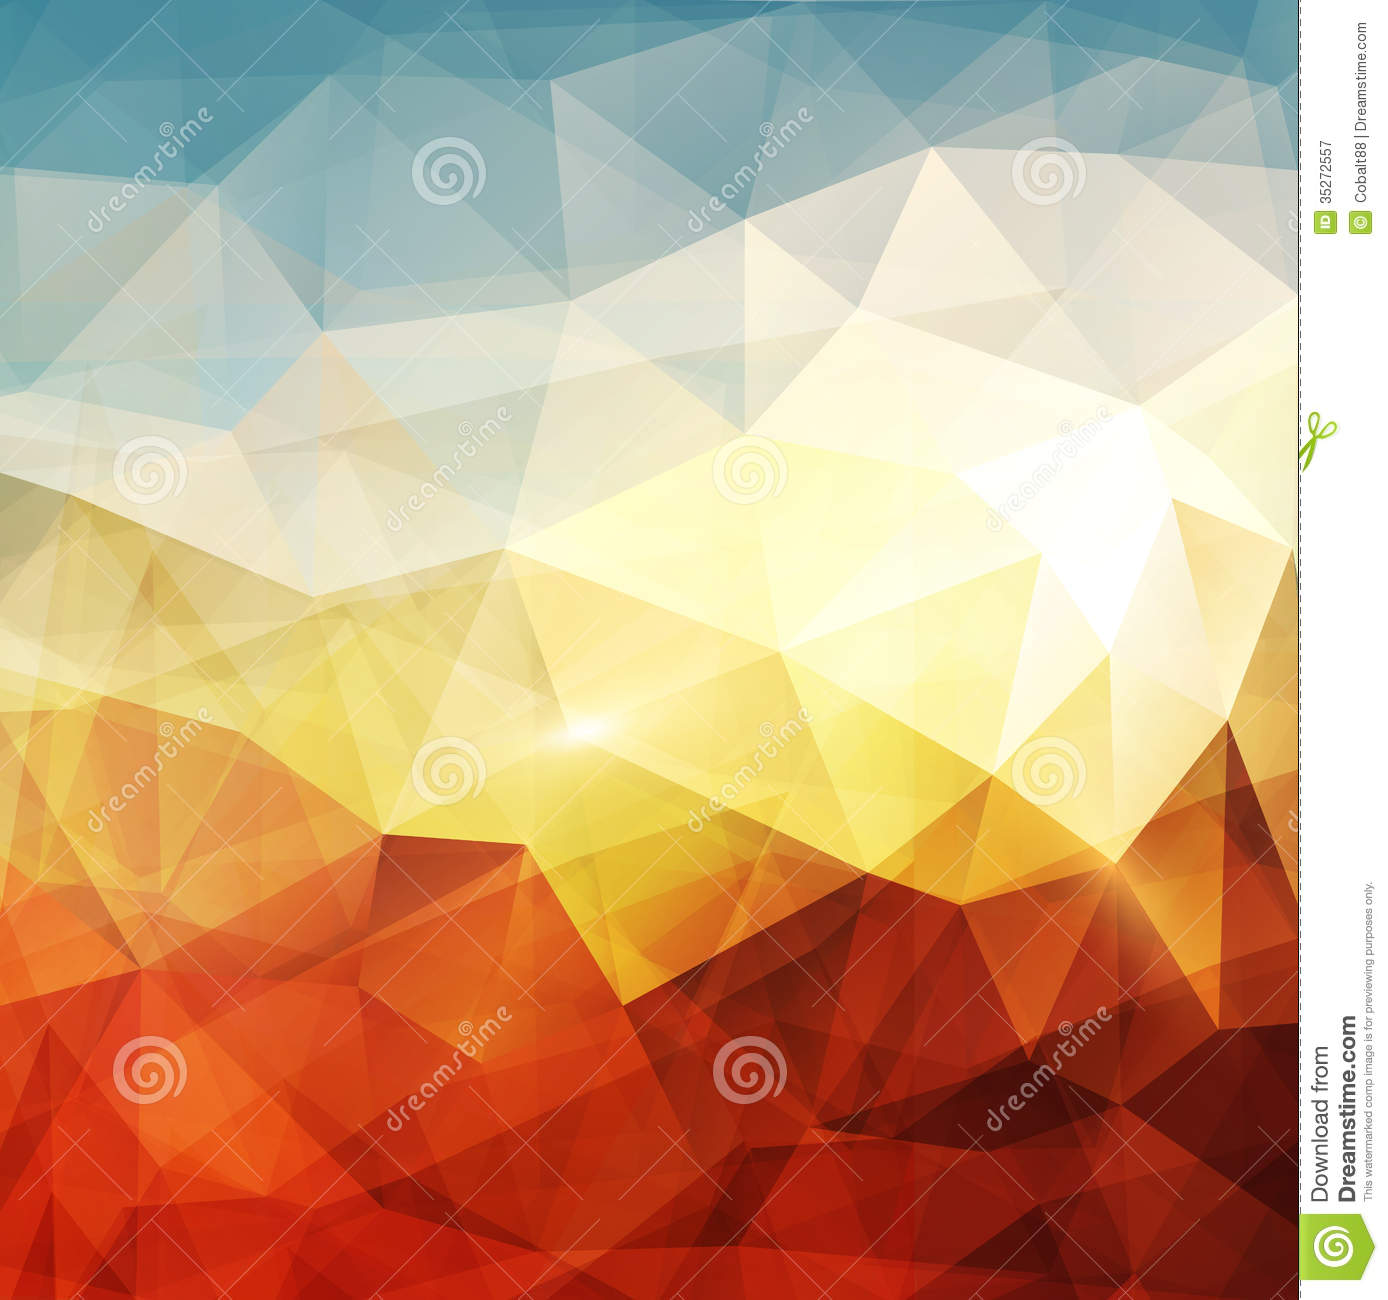 Abstract Background Stock Vector. Image Of Glow, Dynamic